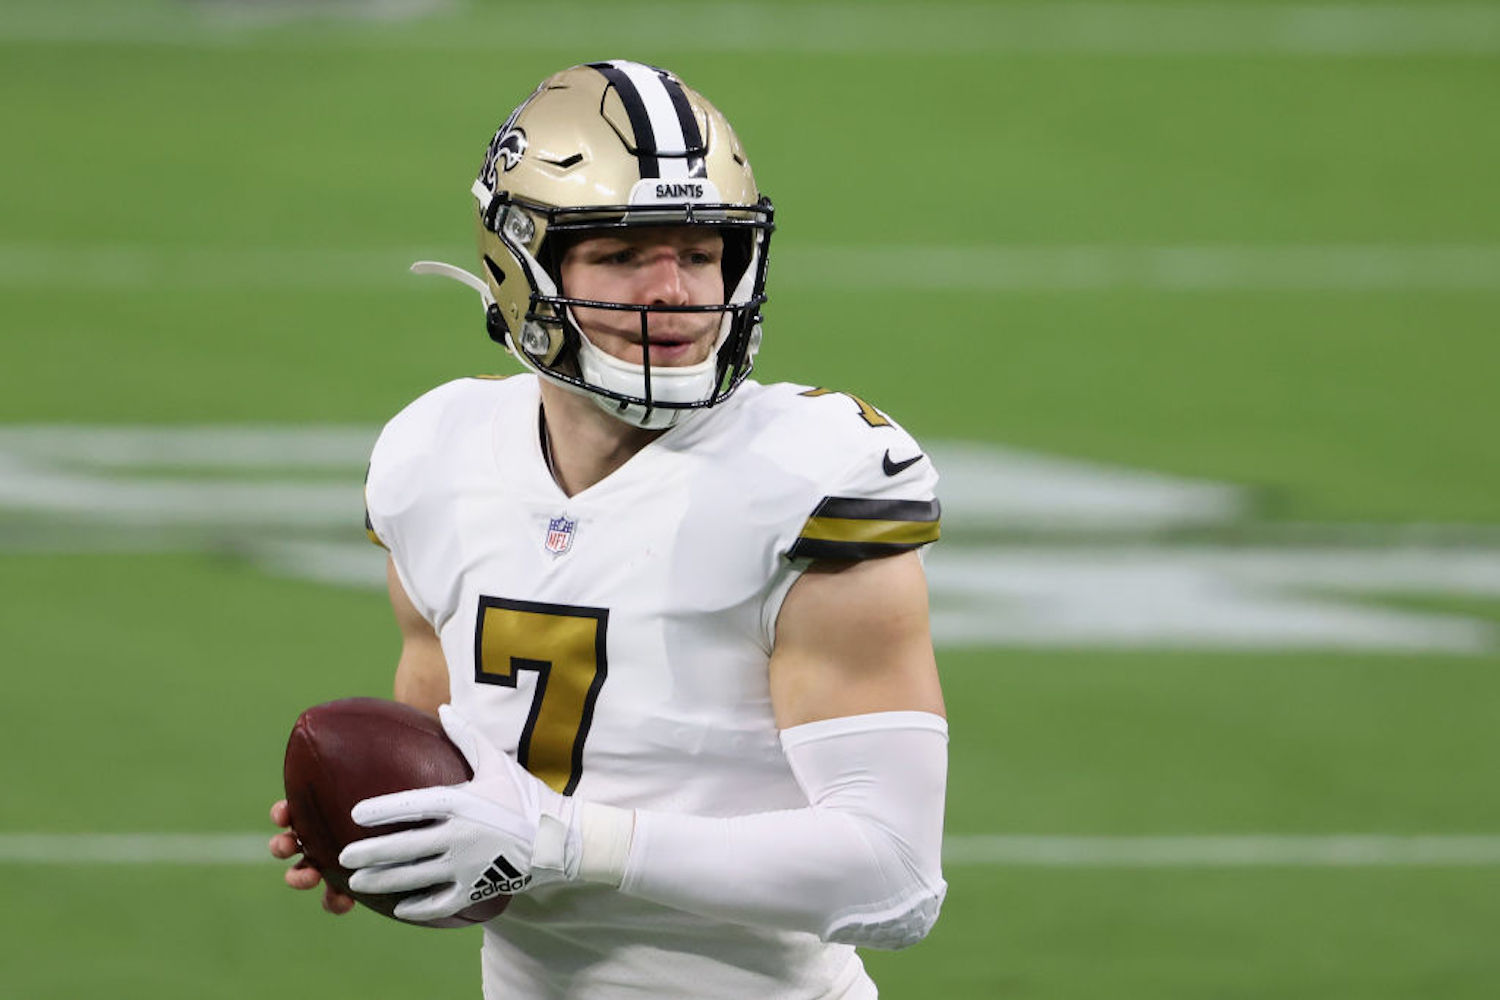 Taysom Hill will reportedly get the start at QB for the New Orleans Saints in Week 11, so how should you handle him in fantasy football?